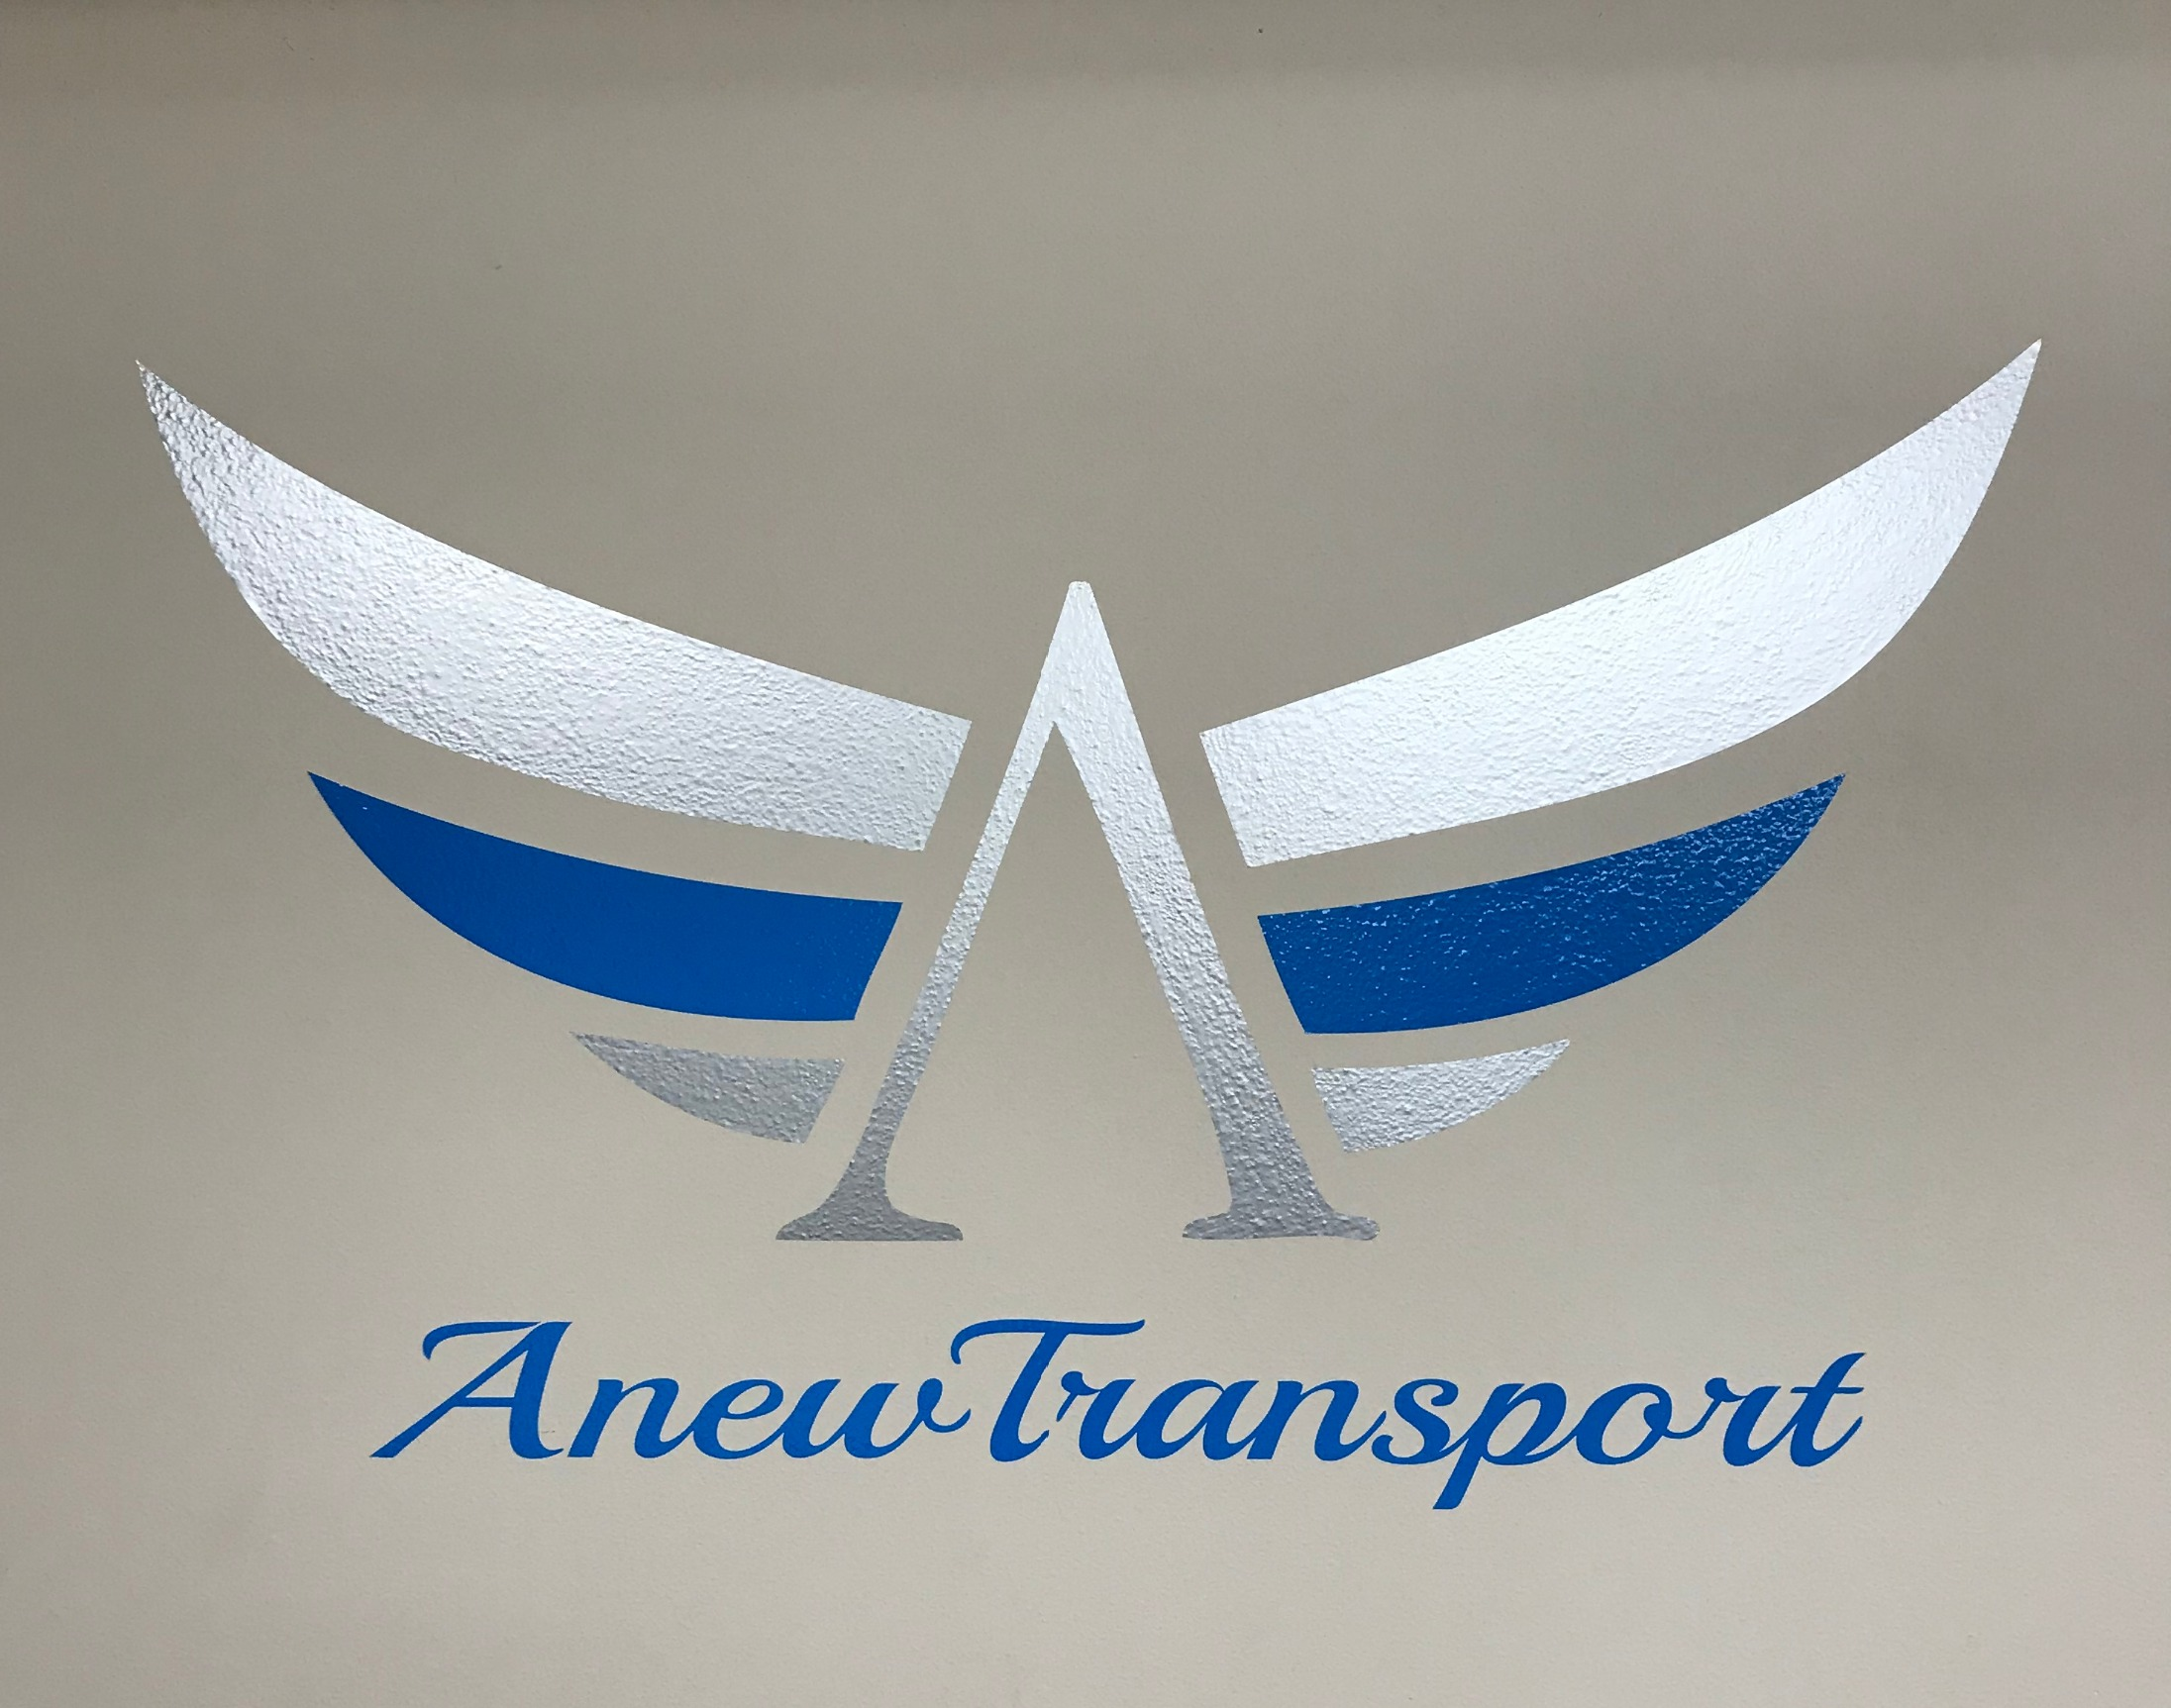 Anew Transport_edited